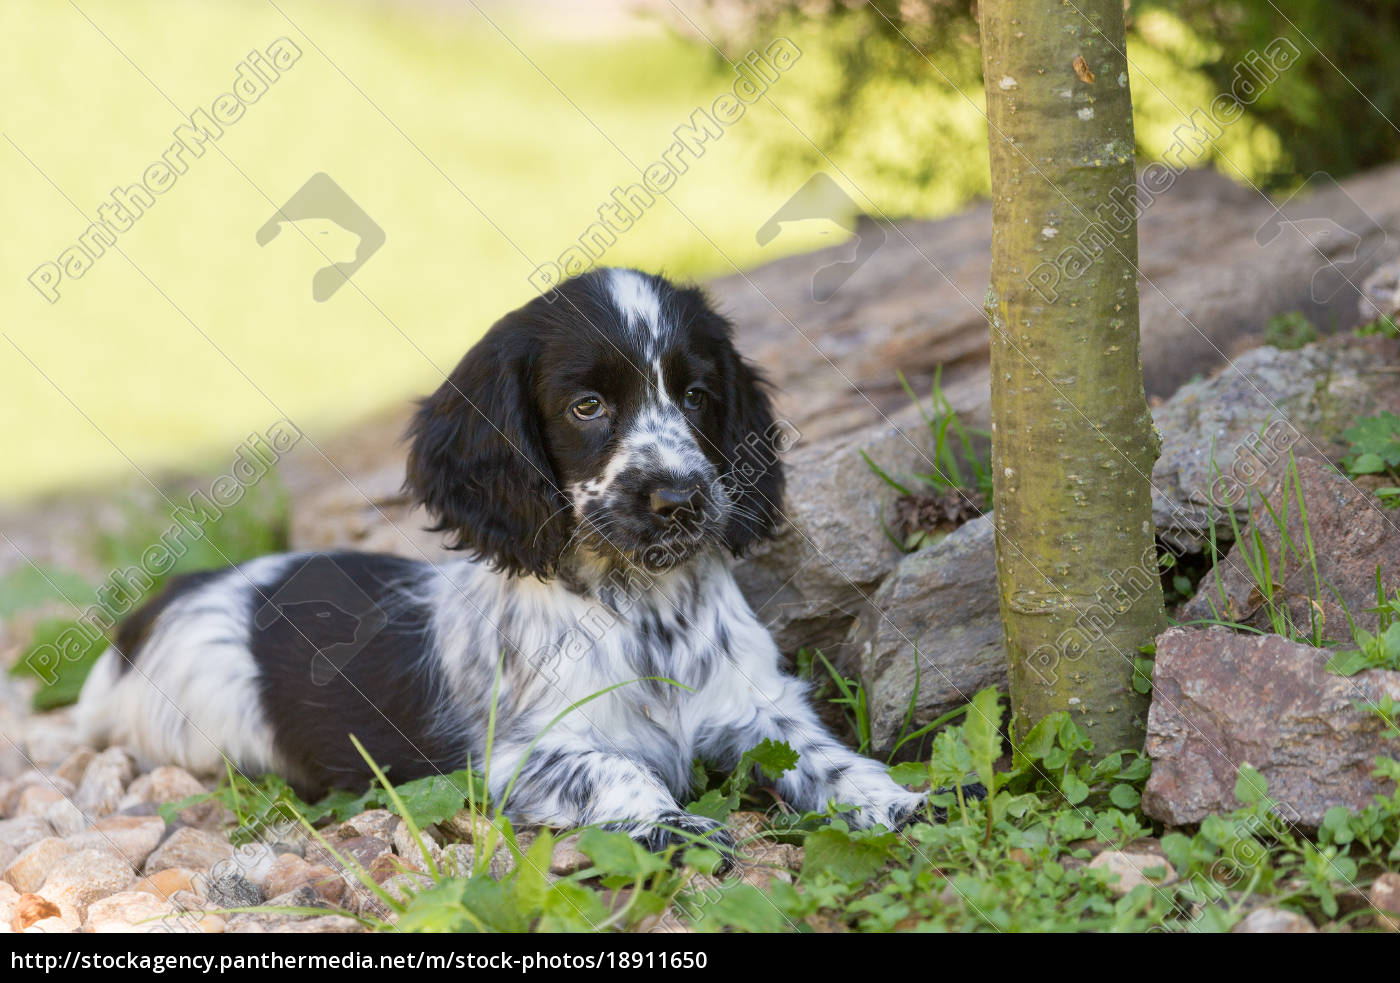 English Cocker Spaniel Puppy Stock Image 18911650 Panthermedia Stock Agency